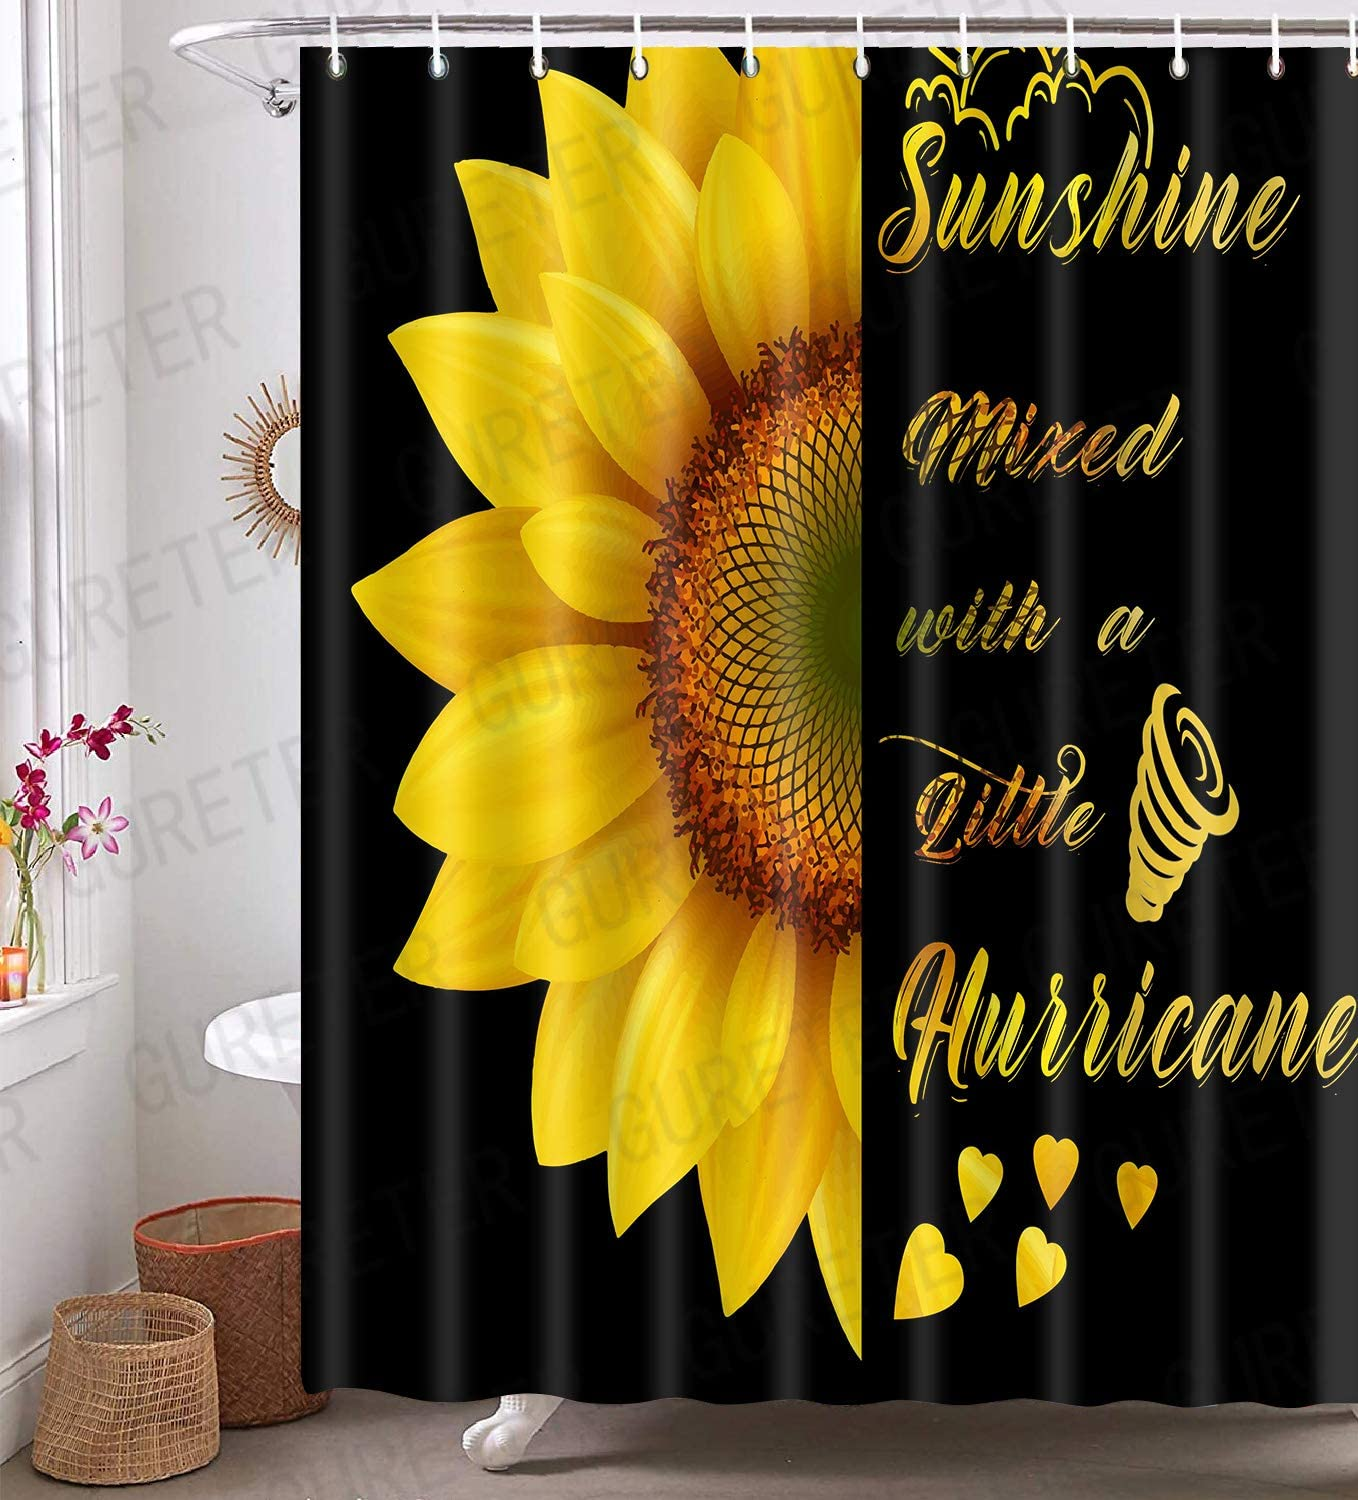 Sunflower Inspirational Quotes Shower Curtain, Rustic Floral Black Bathroom Decor, 72x72 Inch Water-Proof Polyester Bath Curtain, 12 Plastic Hooks Included YLZYGE104